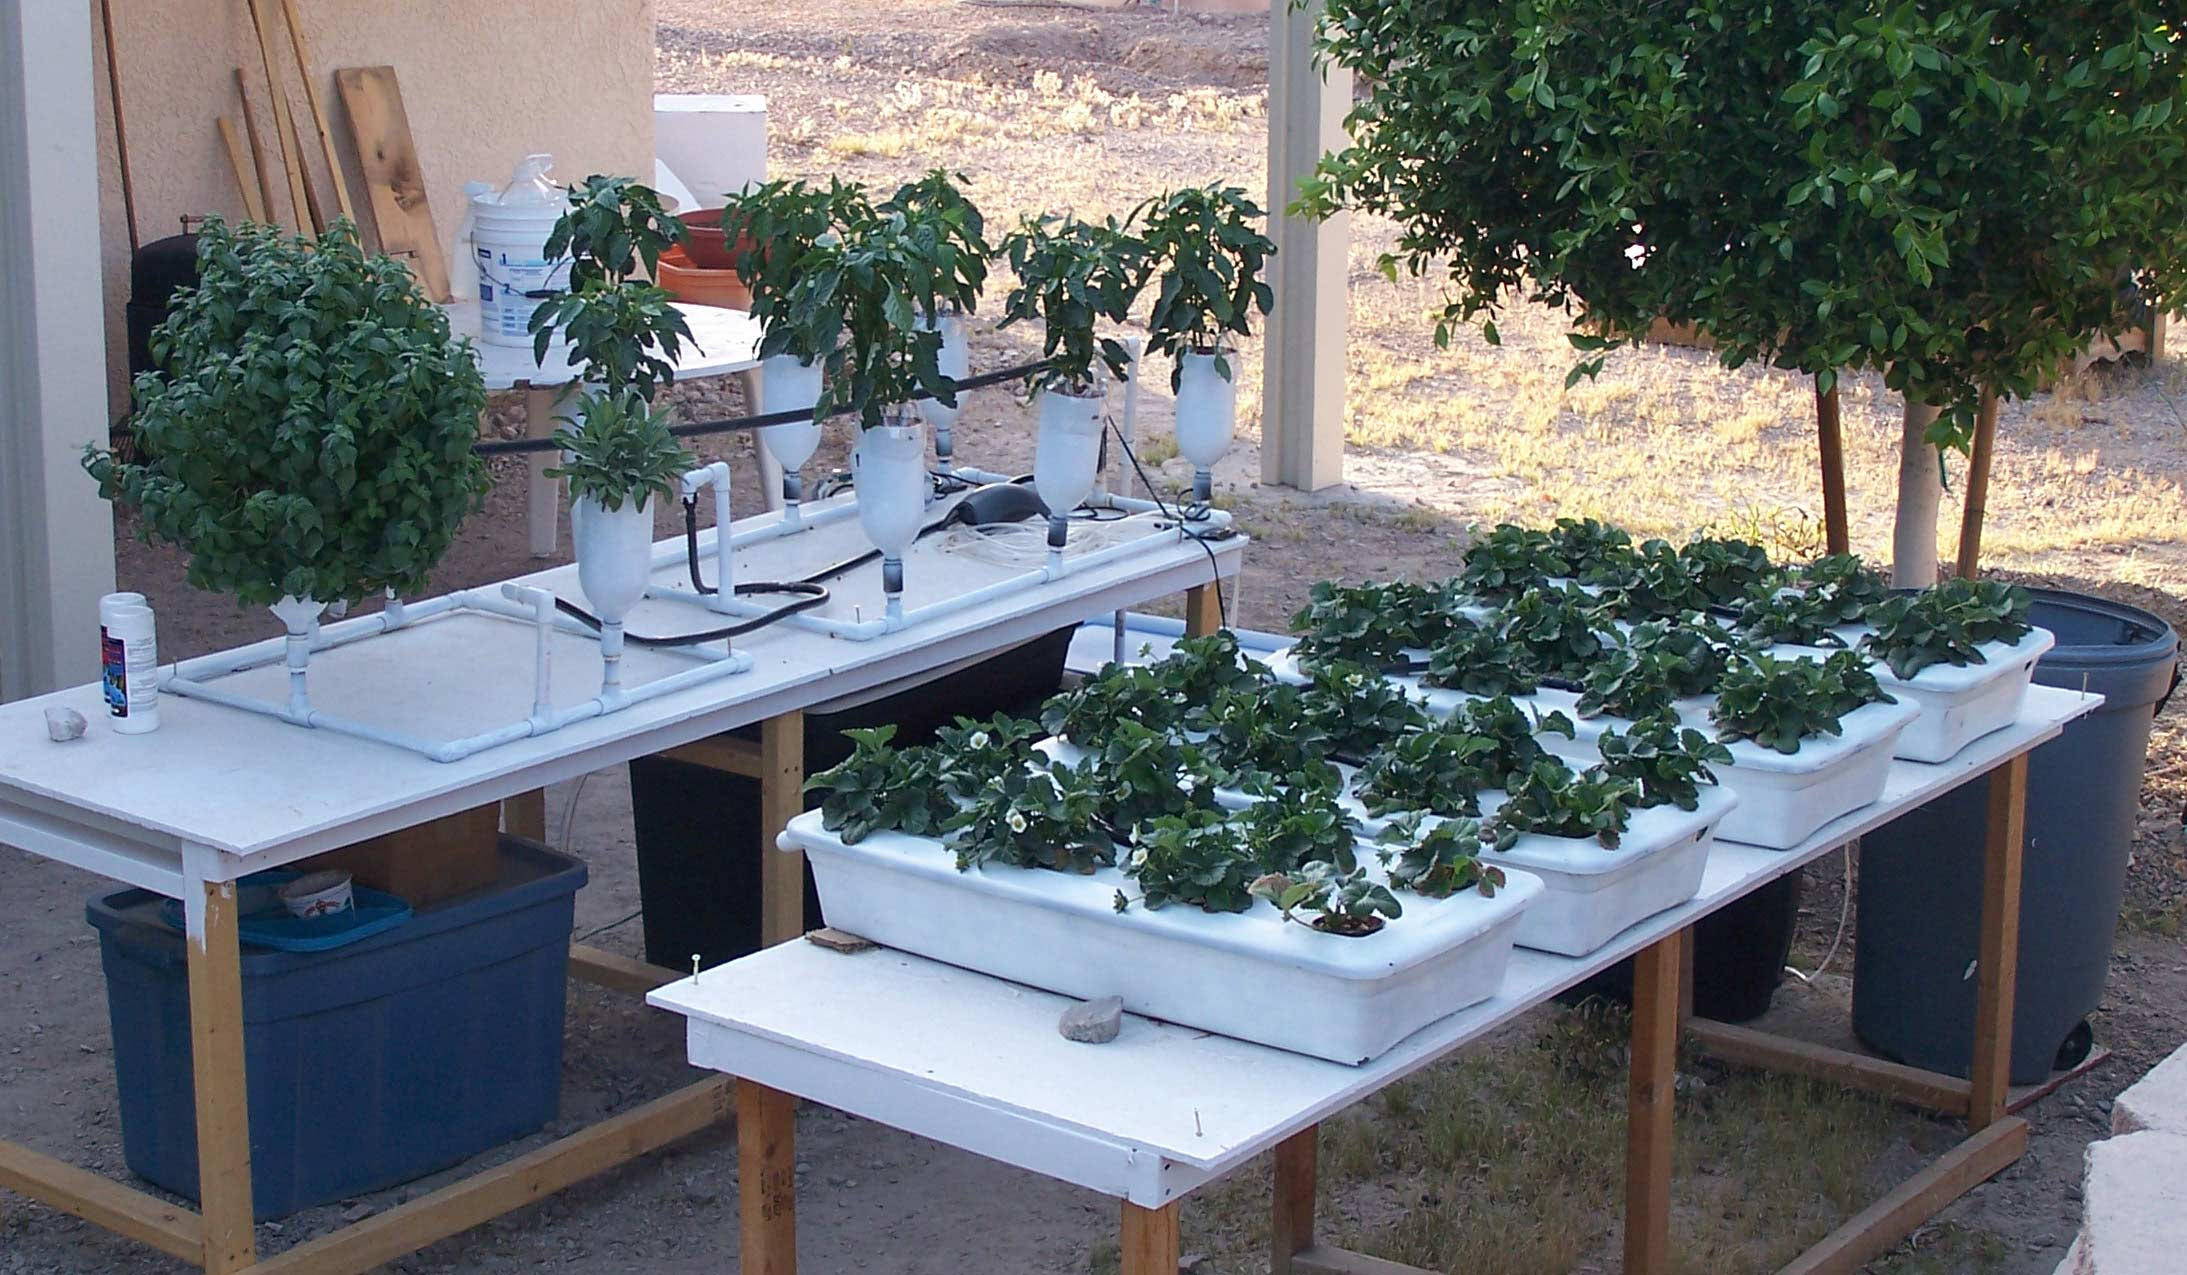 Oktober 2017   Aquaponics for You on small garden greenhouse, small greenhouse frame, small greenhouse heating, small greenhouse supplies, small greenhouse plans, small pvc greenhouse, small winter greenhouse, small propagation greenhouse, small hobby greenhouse, small solar greenhouse, small metal greenhouse, small indoor greenhouse, small container greenhouse, small greenhouse foundation, small portable greenhouses, small hoop greenhouse, small plant greenhouse, small farm greenhouse, small cannabis greenhouse, small mushroom greenhouse,